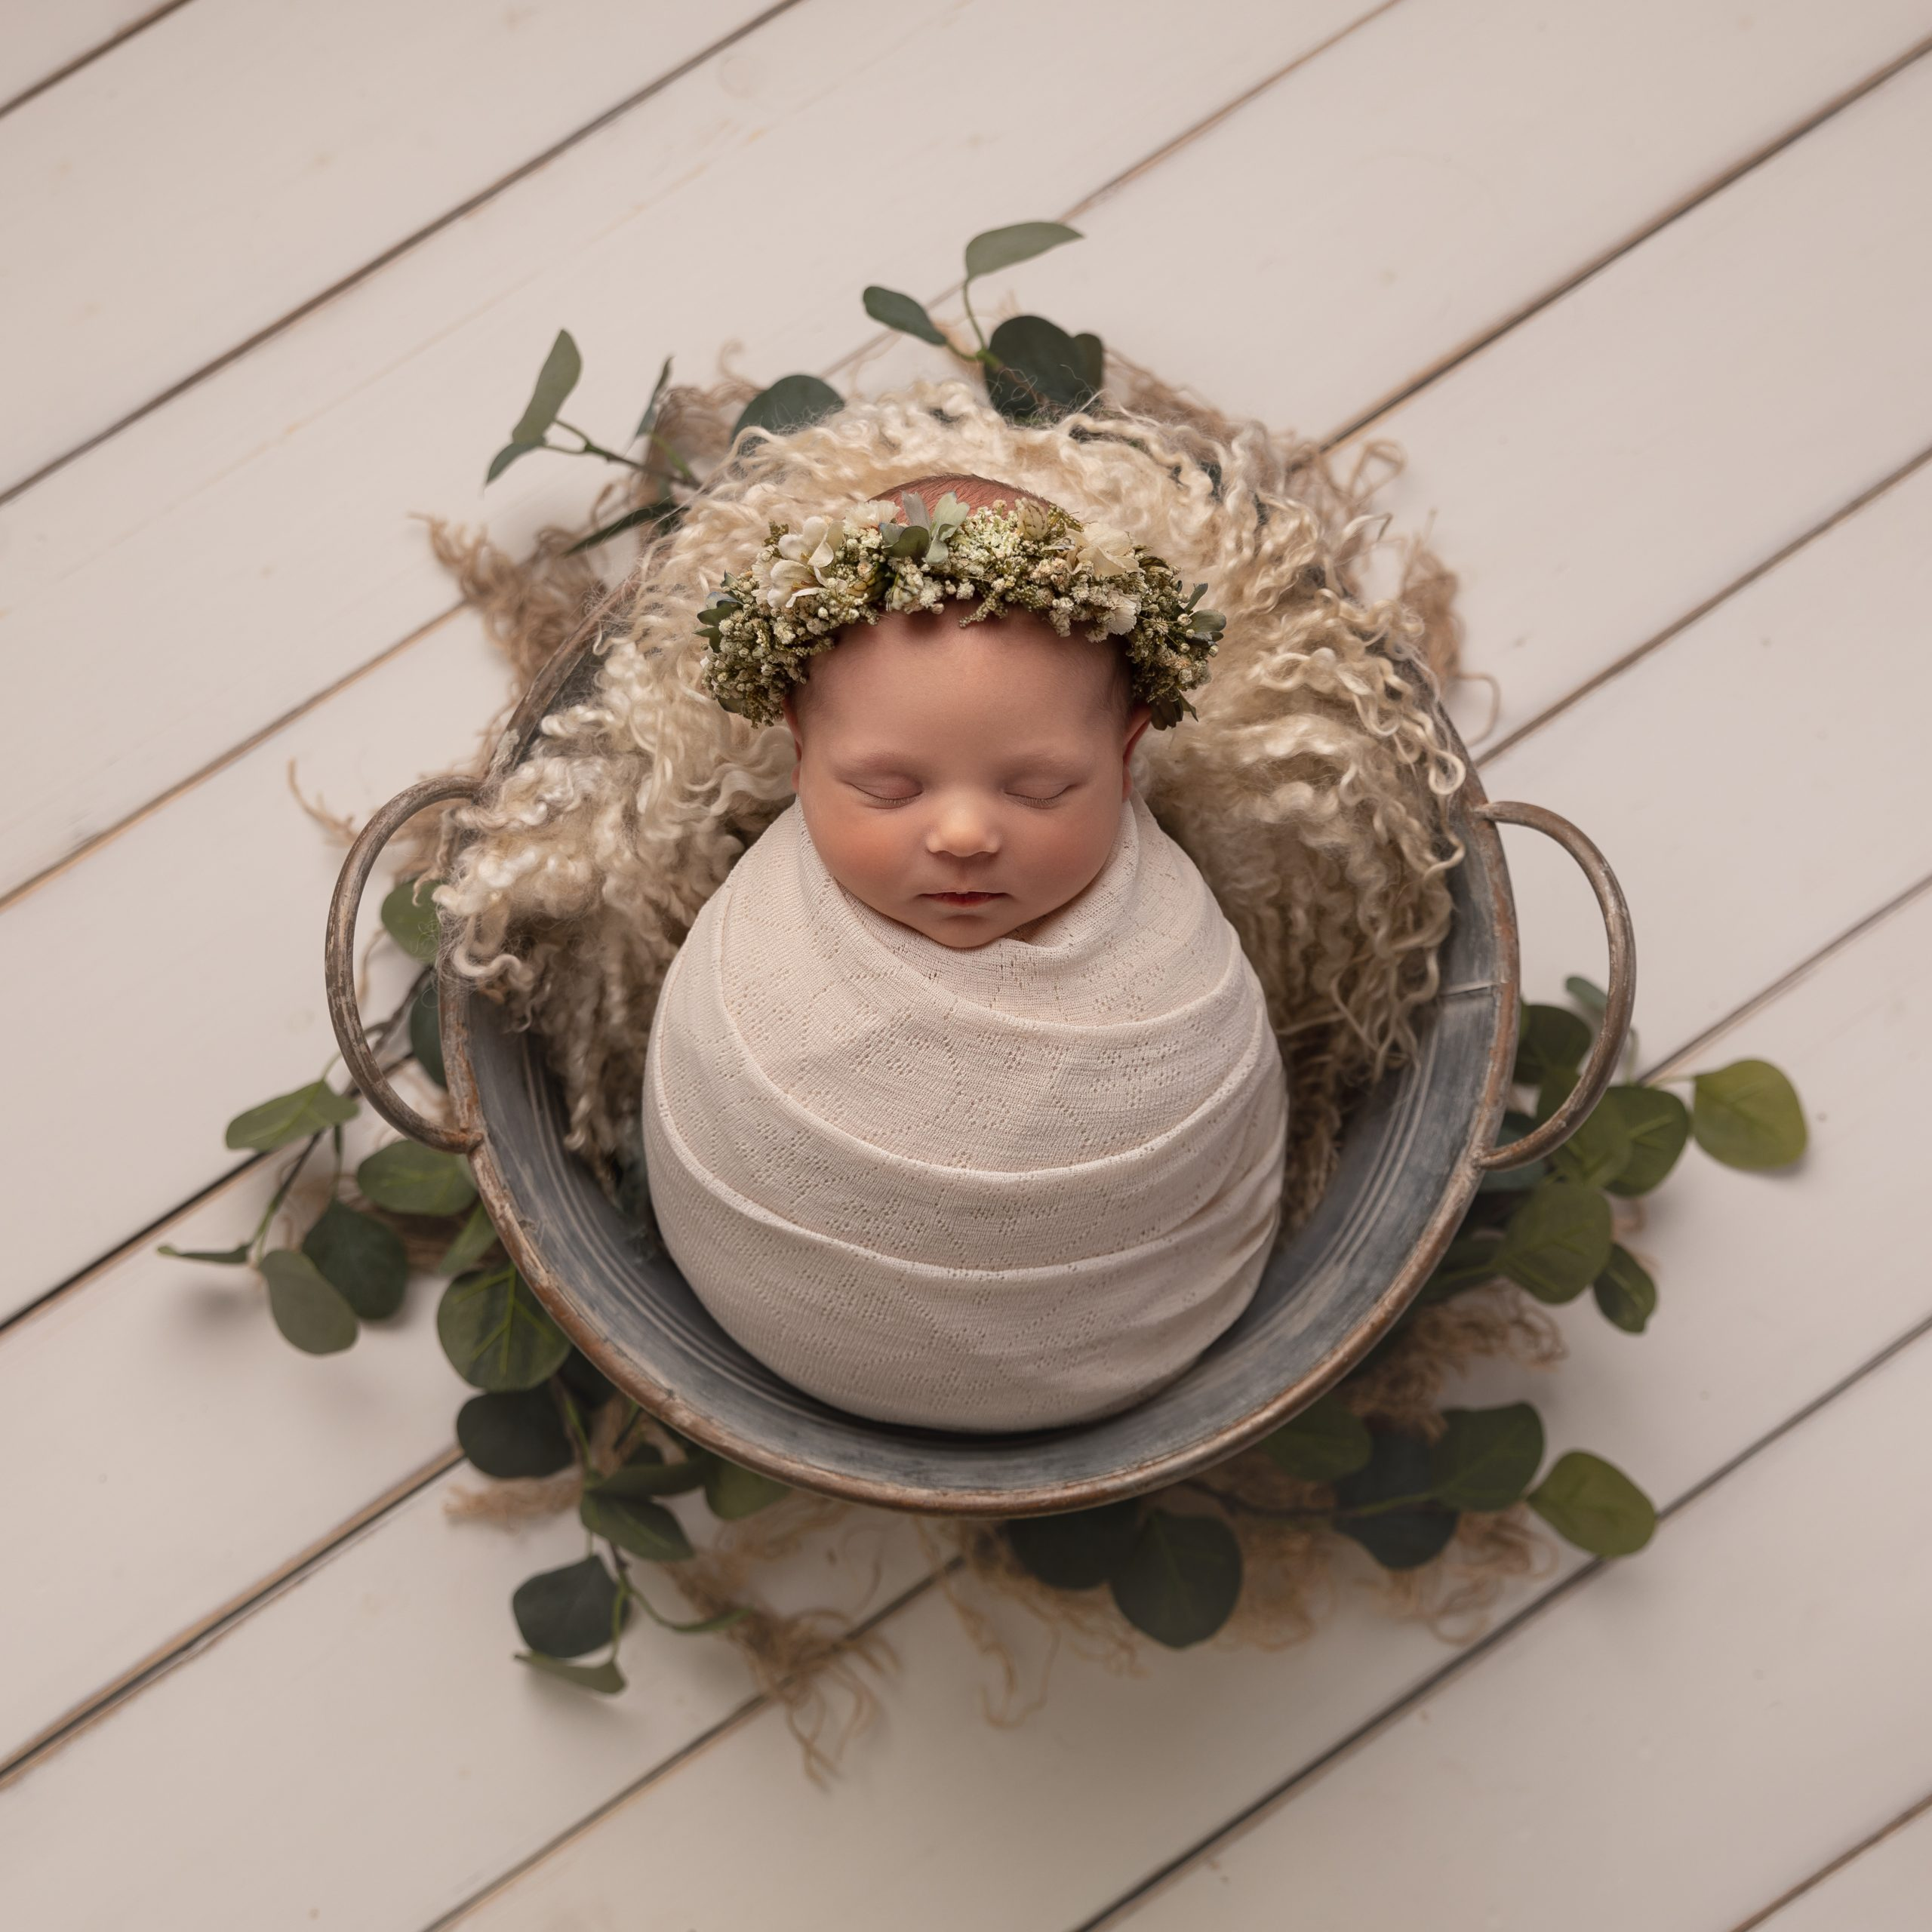 Newborn baby wrapped in white cotton and placed in a metal bucket with stunning headband Cheshire Newborn Photographer in Sandbach